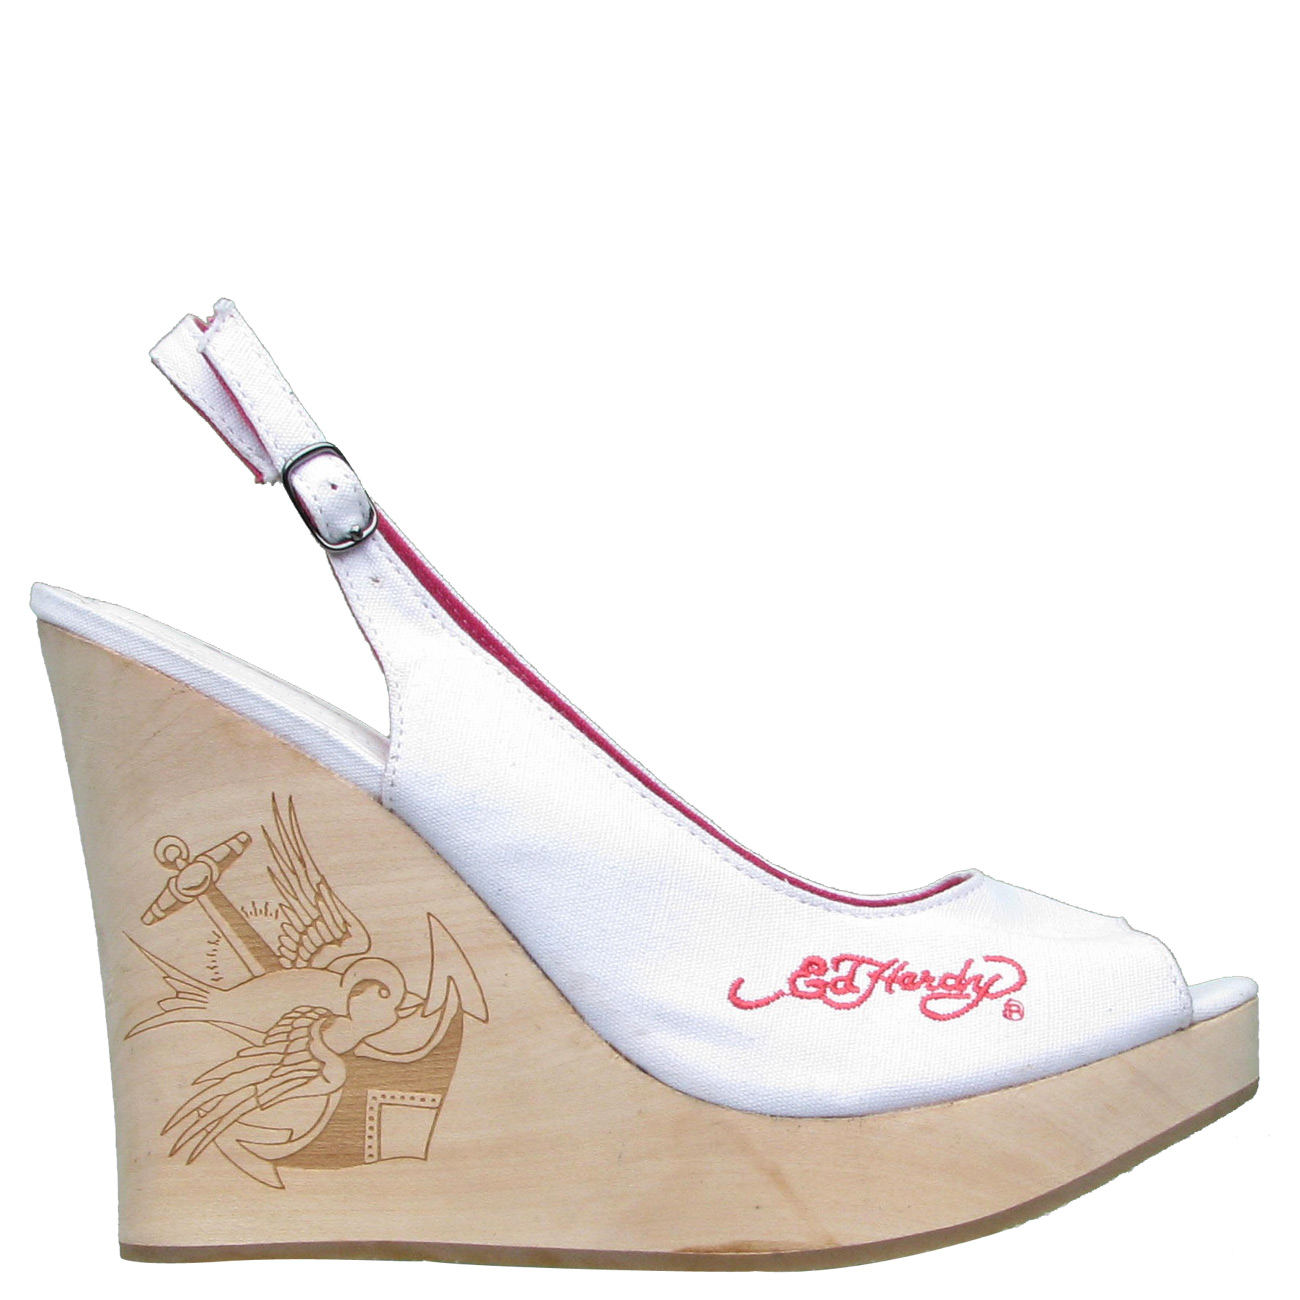 Ed Hardy Chantel Slingback Womens Wedge Shoe - White